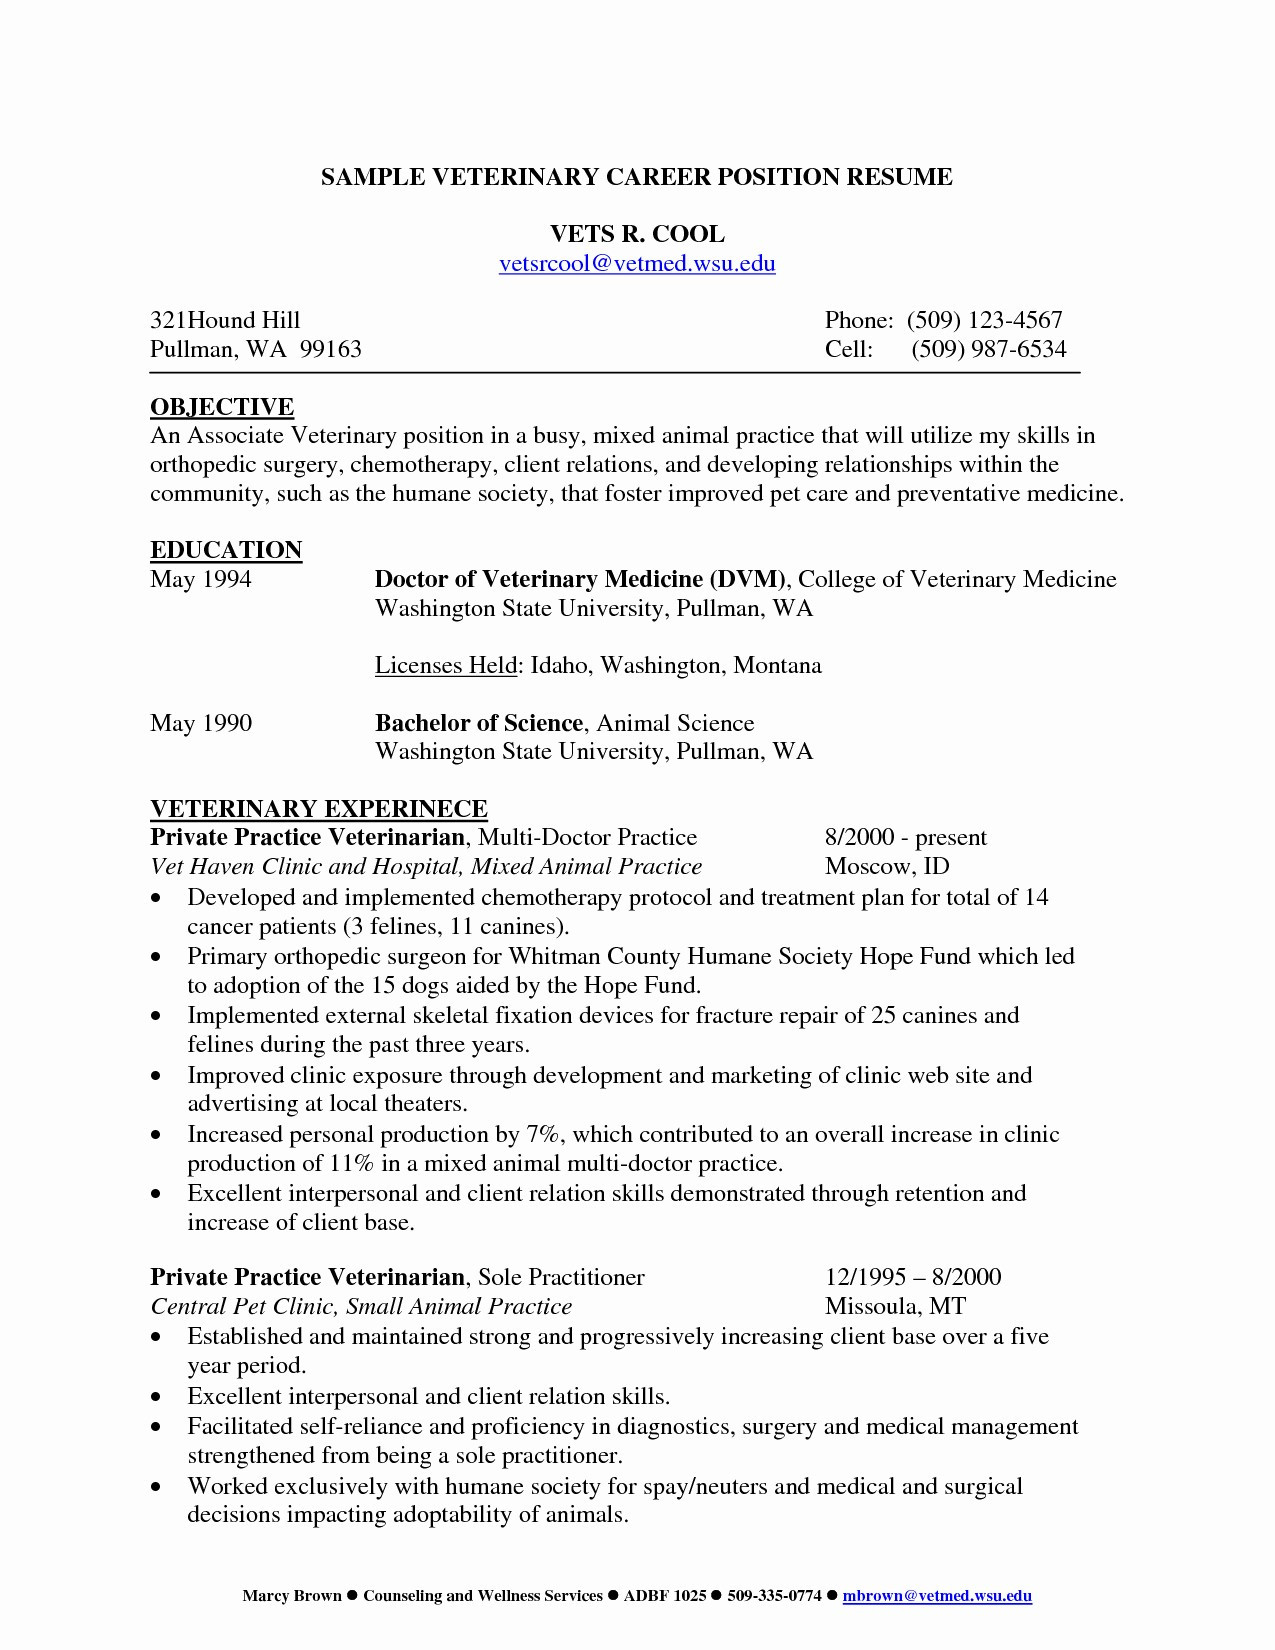 Counseling Resume Template - Counselling Letter Template 2018 Professional Pharmacy Tech Resume